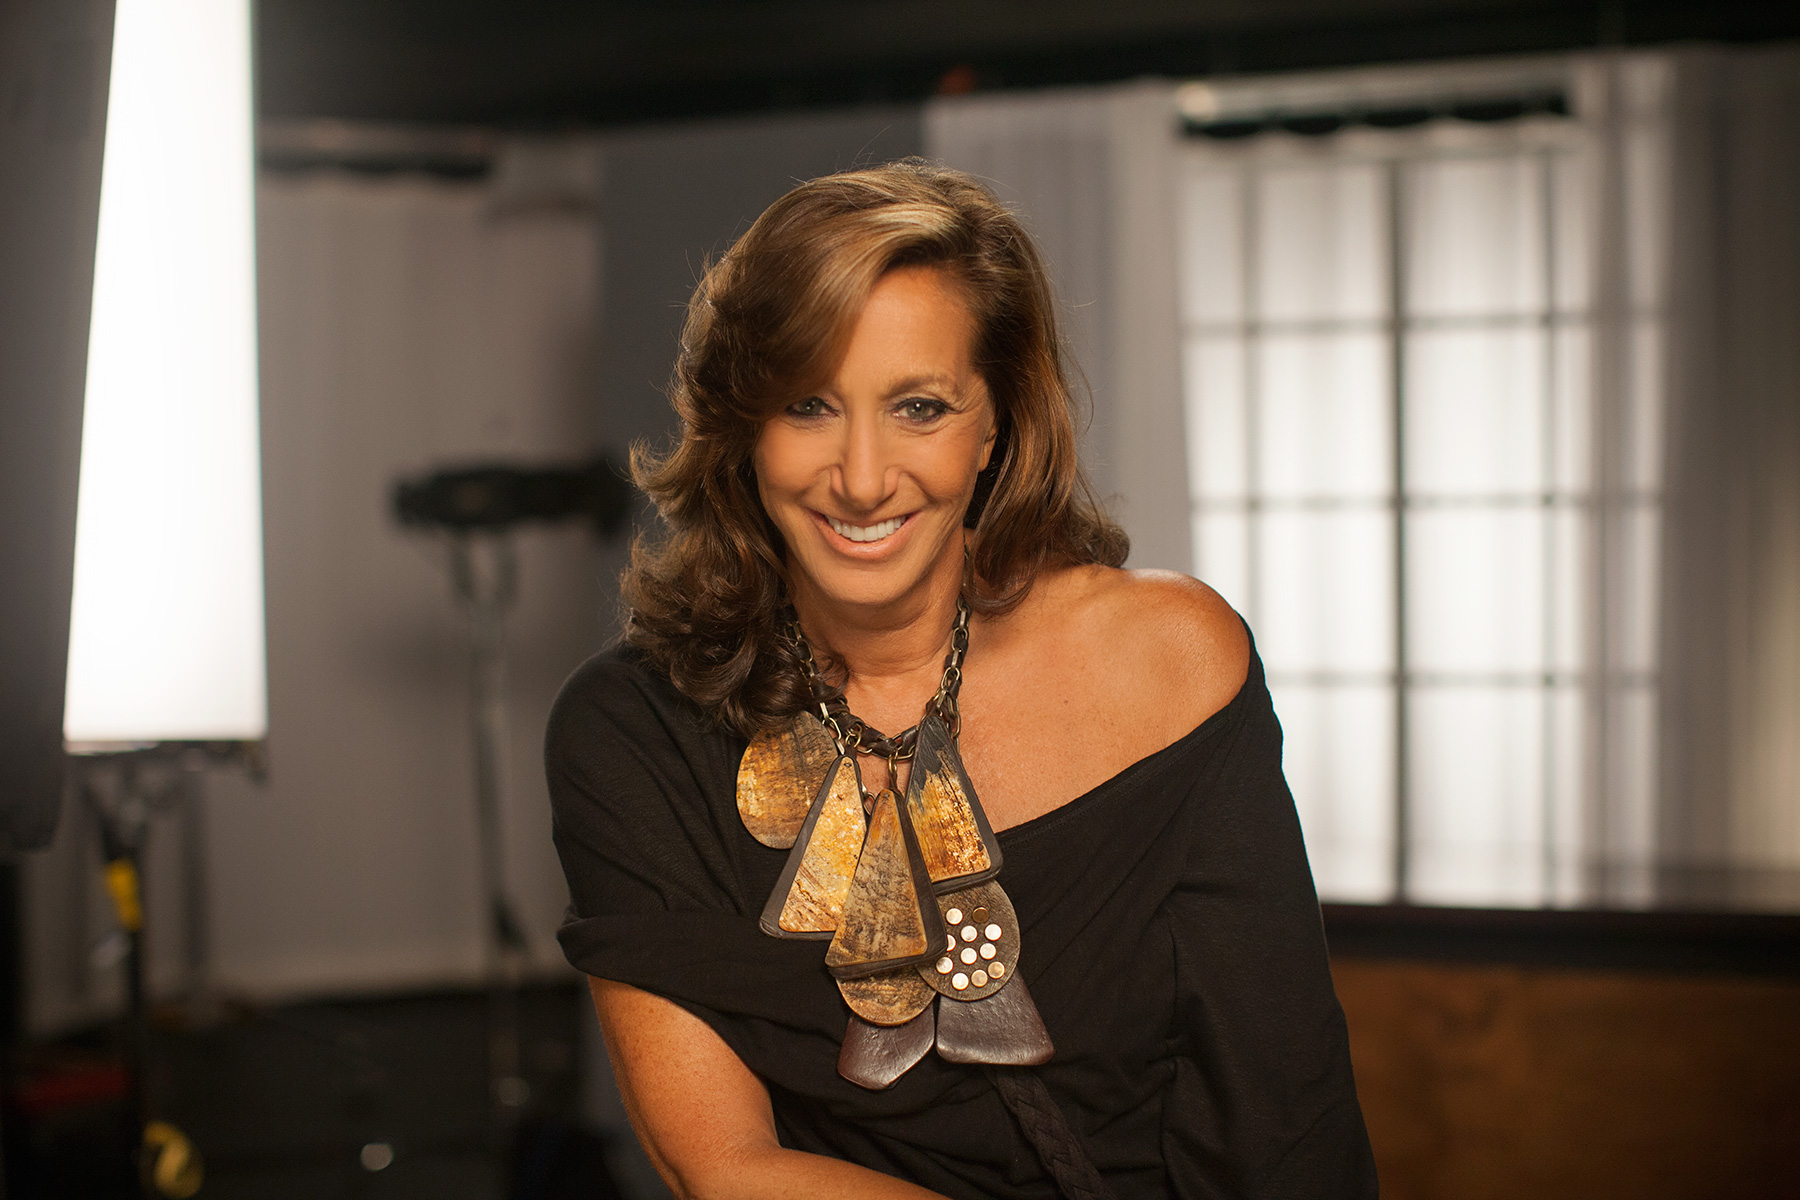 Donna Karan Fashion Designer Philanthropist